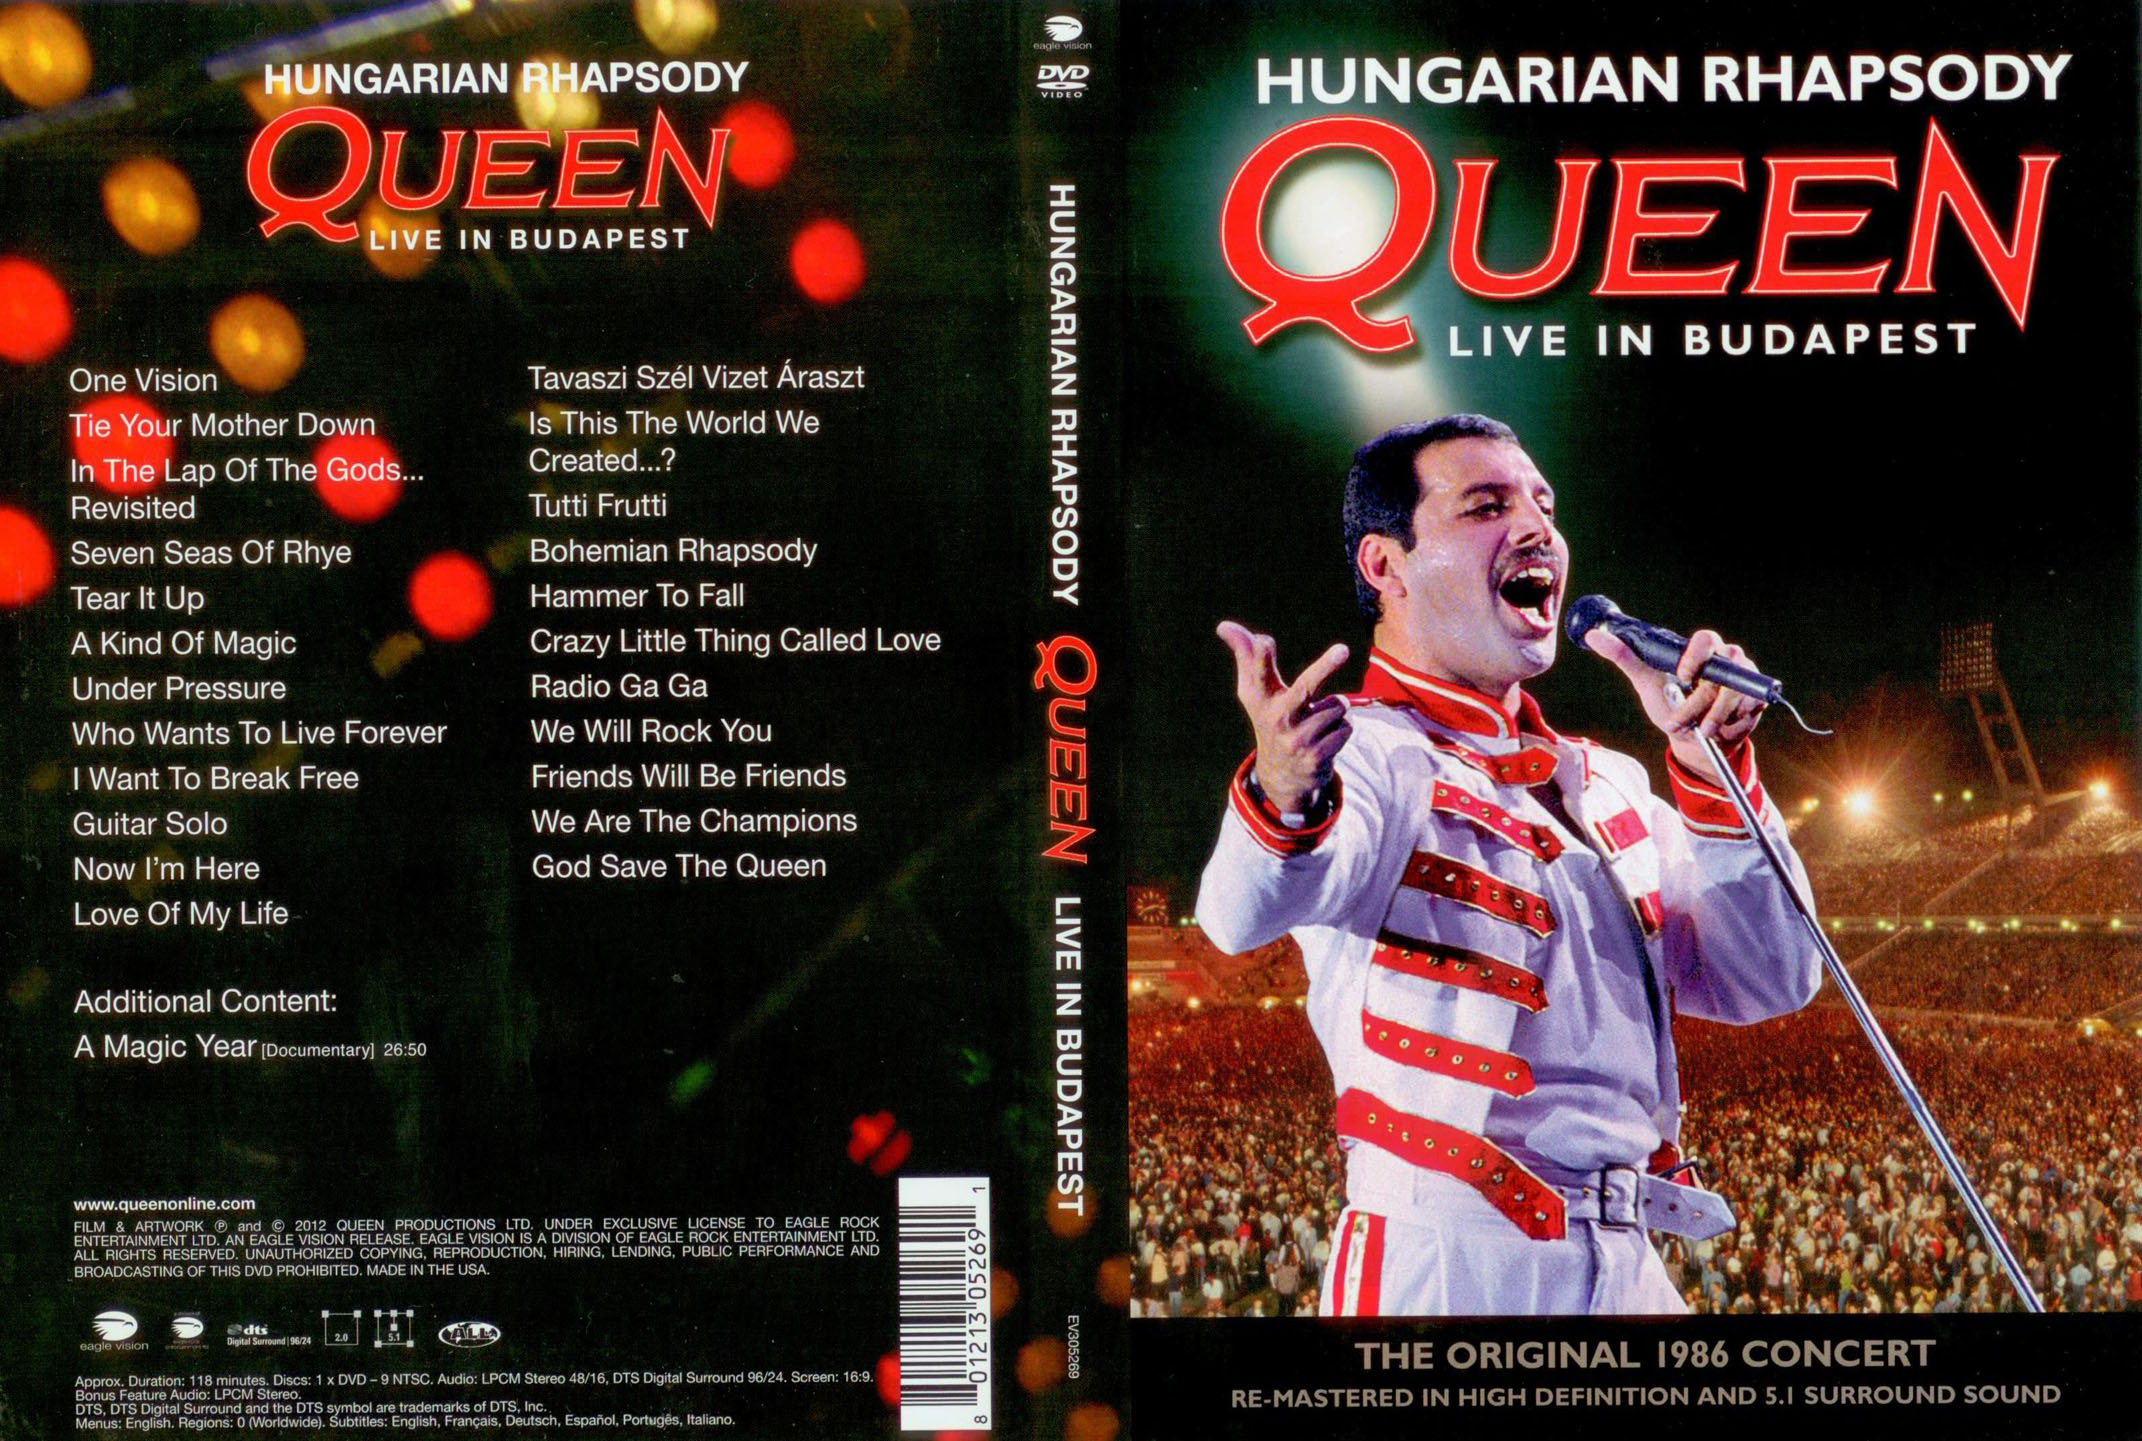 Hungarian Rhapsody – Queen Live In Budapest